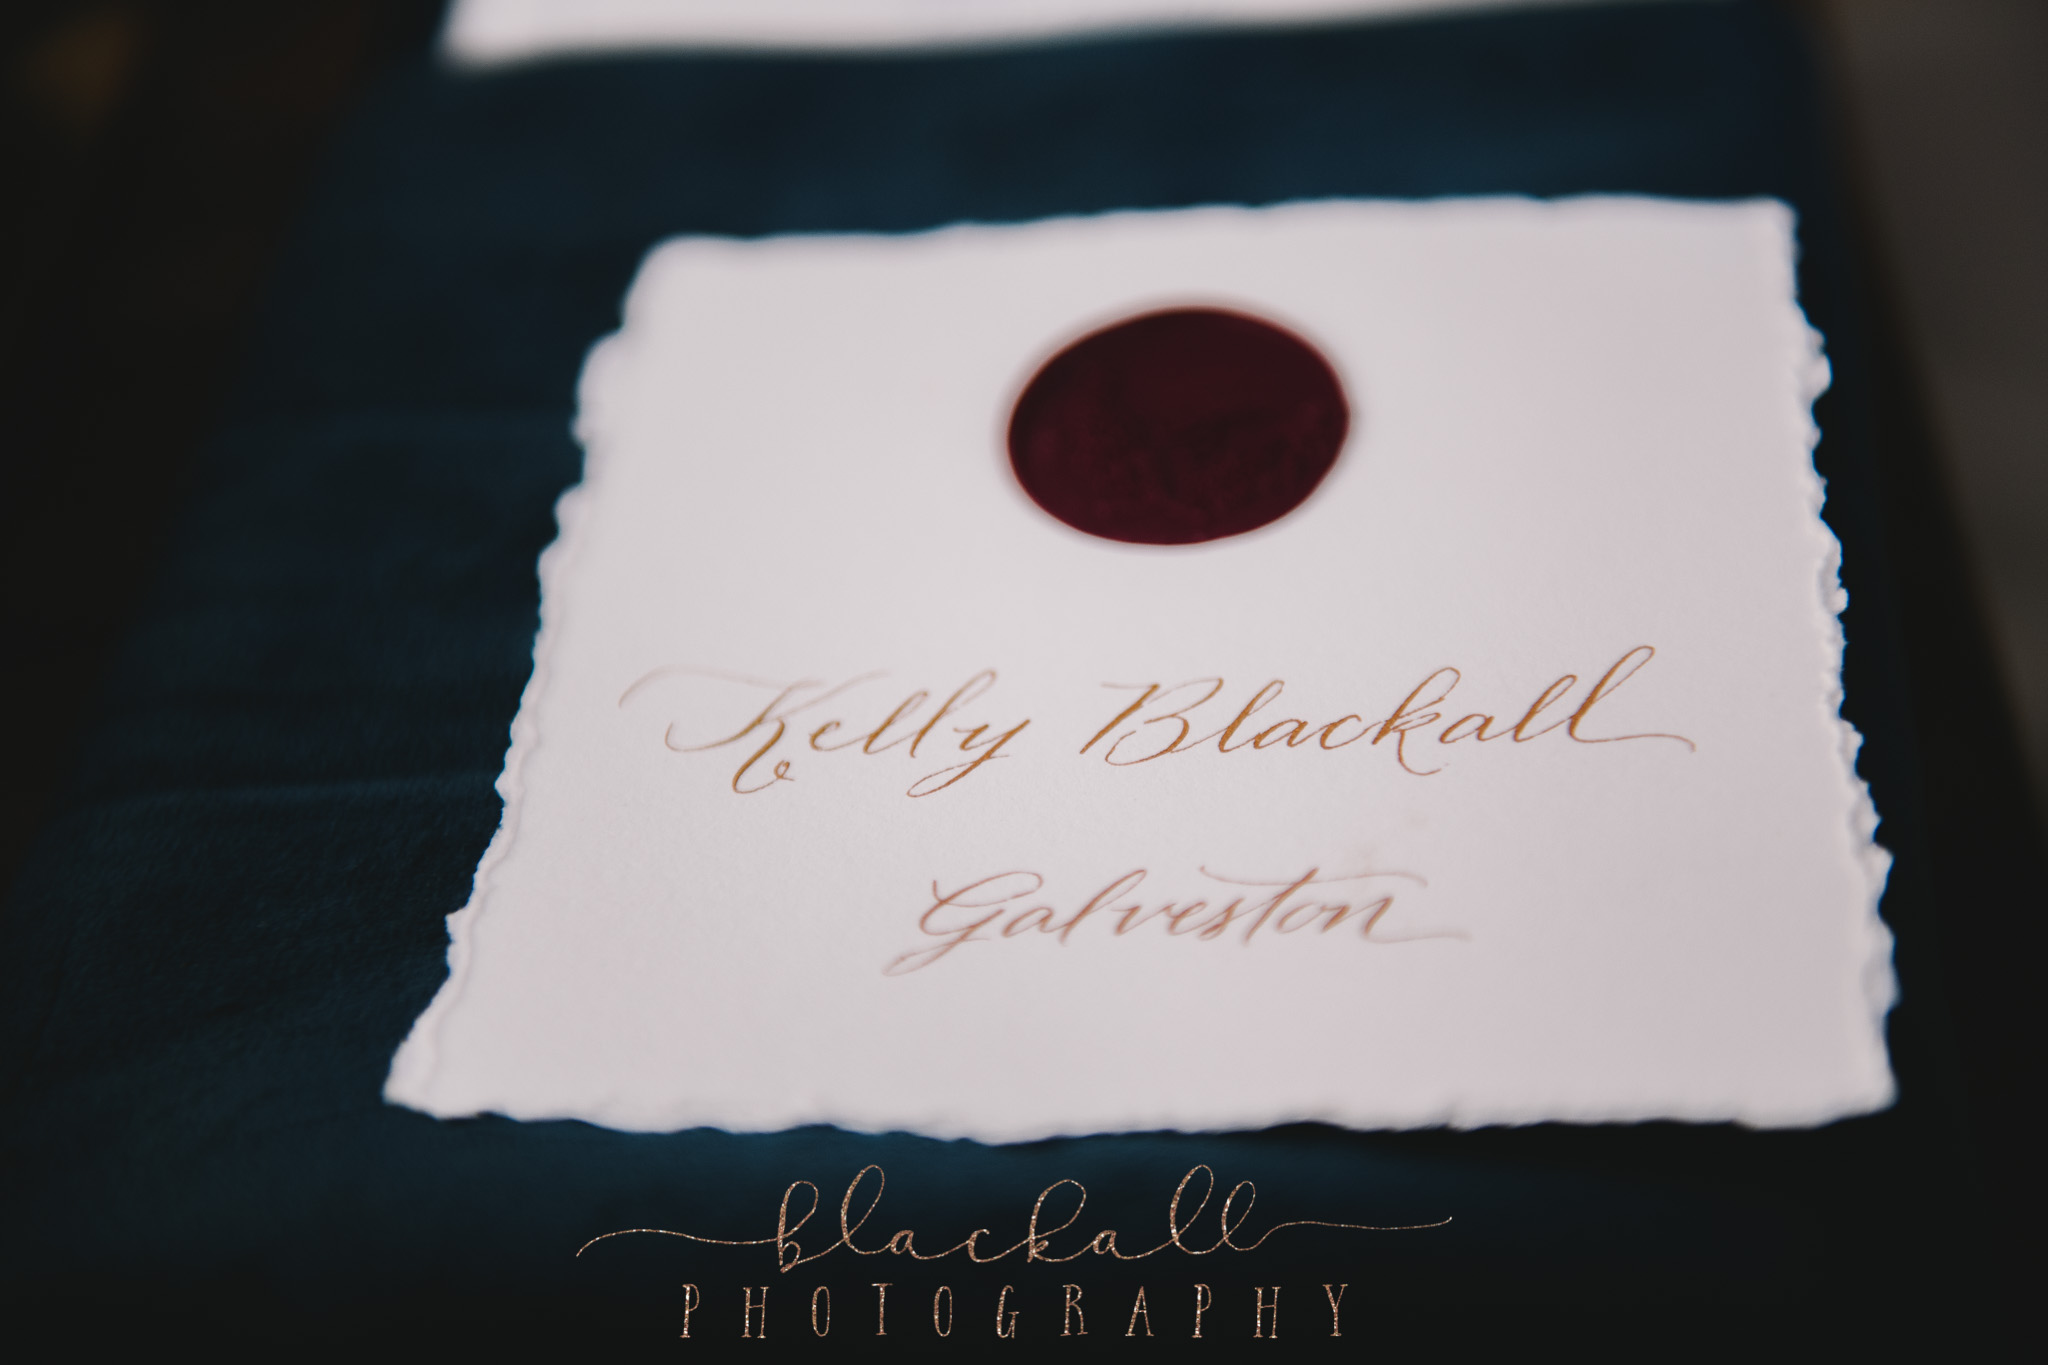 This right here... probably not a big deal to anyone else but to be included and actually have a name card to an assigned table (the Bride & Grooms table no less)is a BIG deal as a photographer. So sweet of this wonderful couple to include me in their celebration as a guest. Truly appreciated.